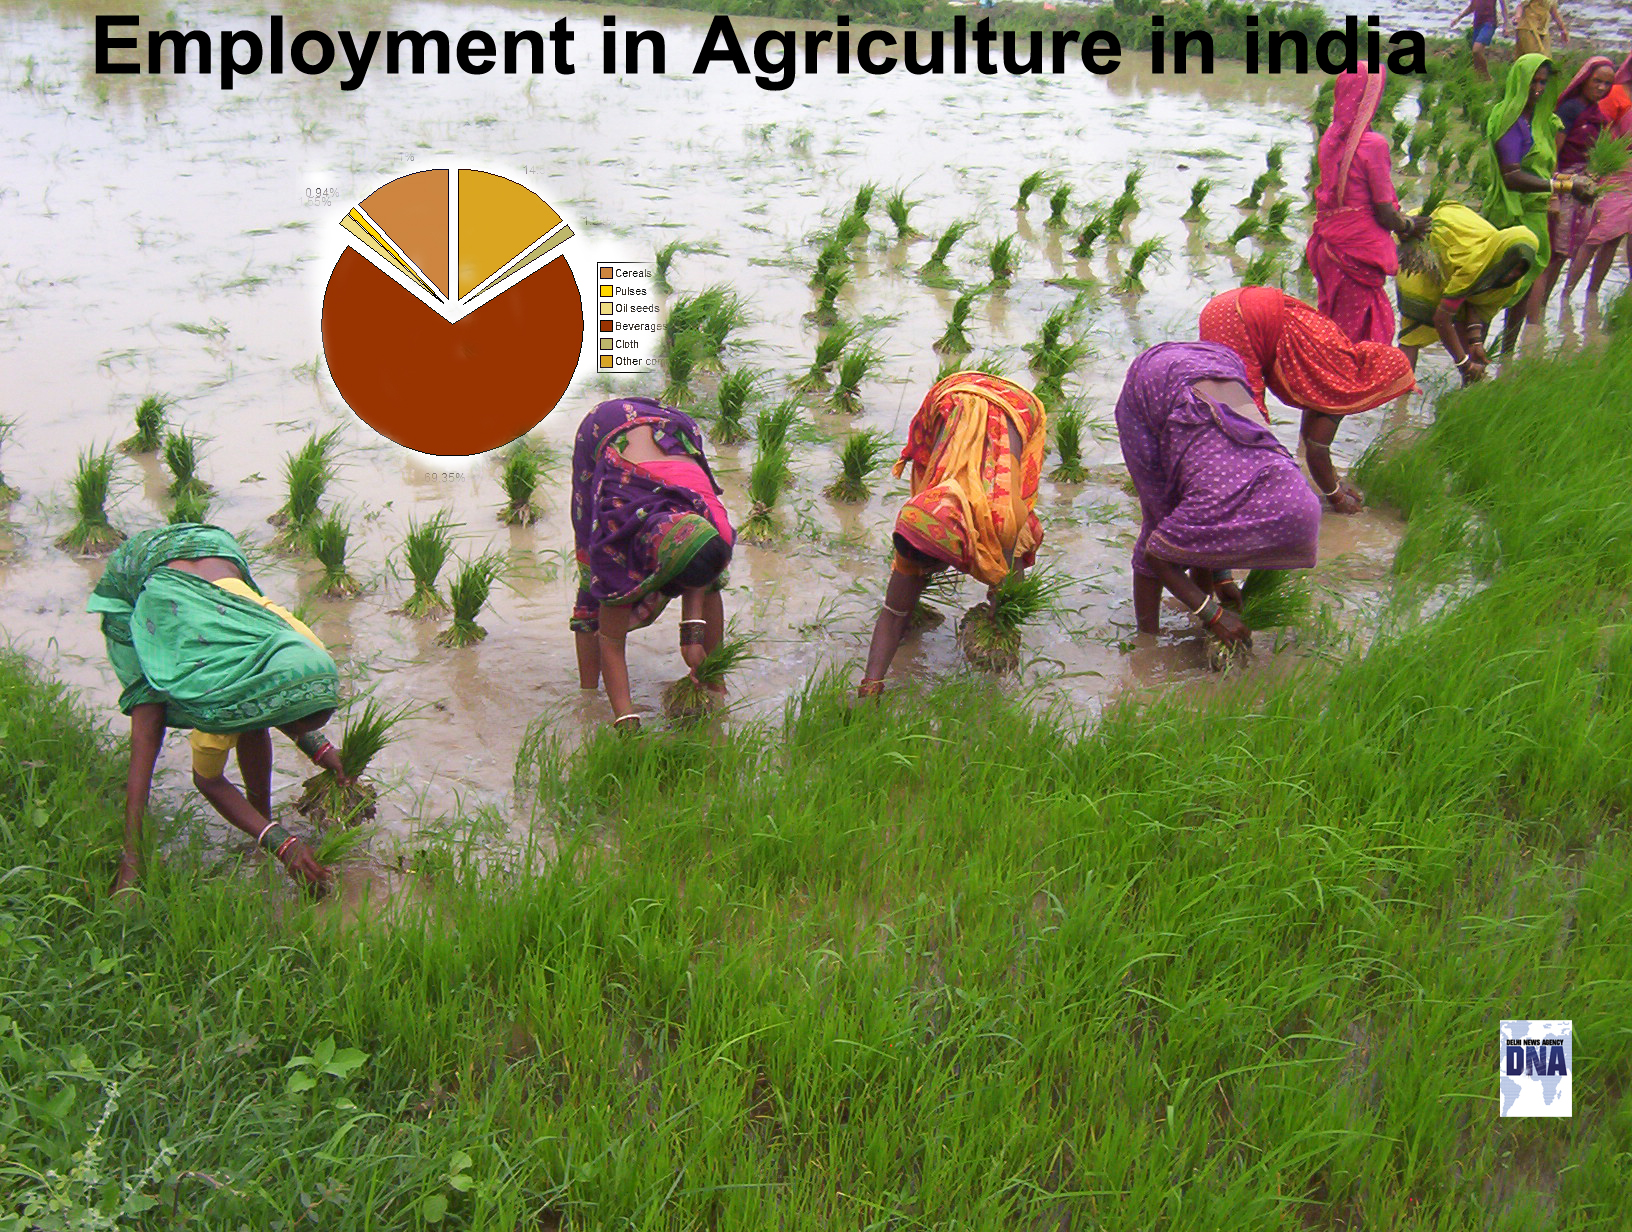 indias agricultural sector an analysis In this article analysis,  the agricultural sector has led to high npas  marketexpress platform brings together some of the industry's top experts on.